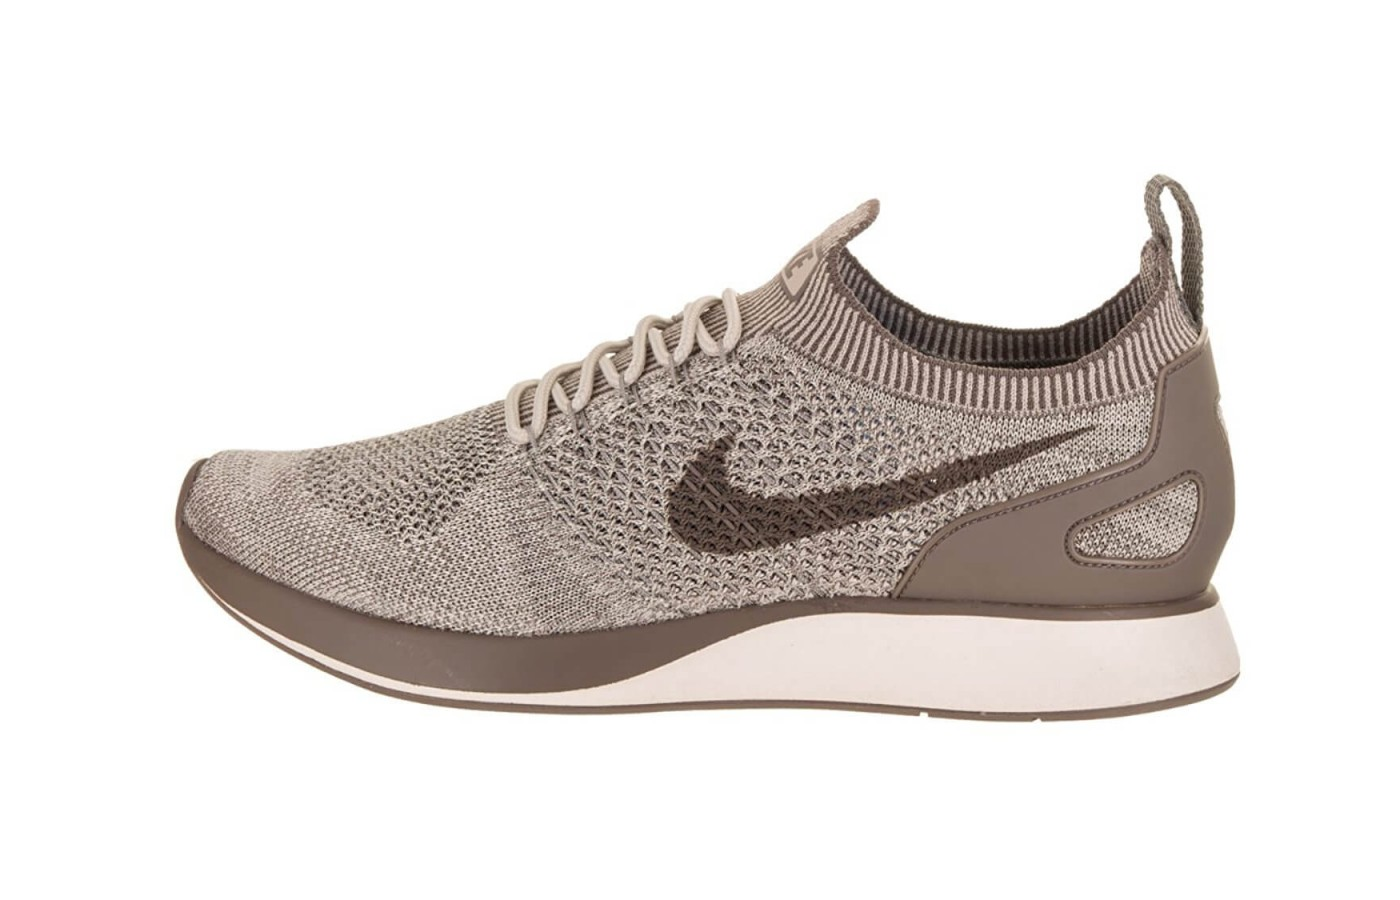 The Nike Air Zoom Mariah Flyknit Racer features Air Zoom midsole cushioning